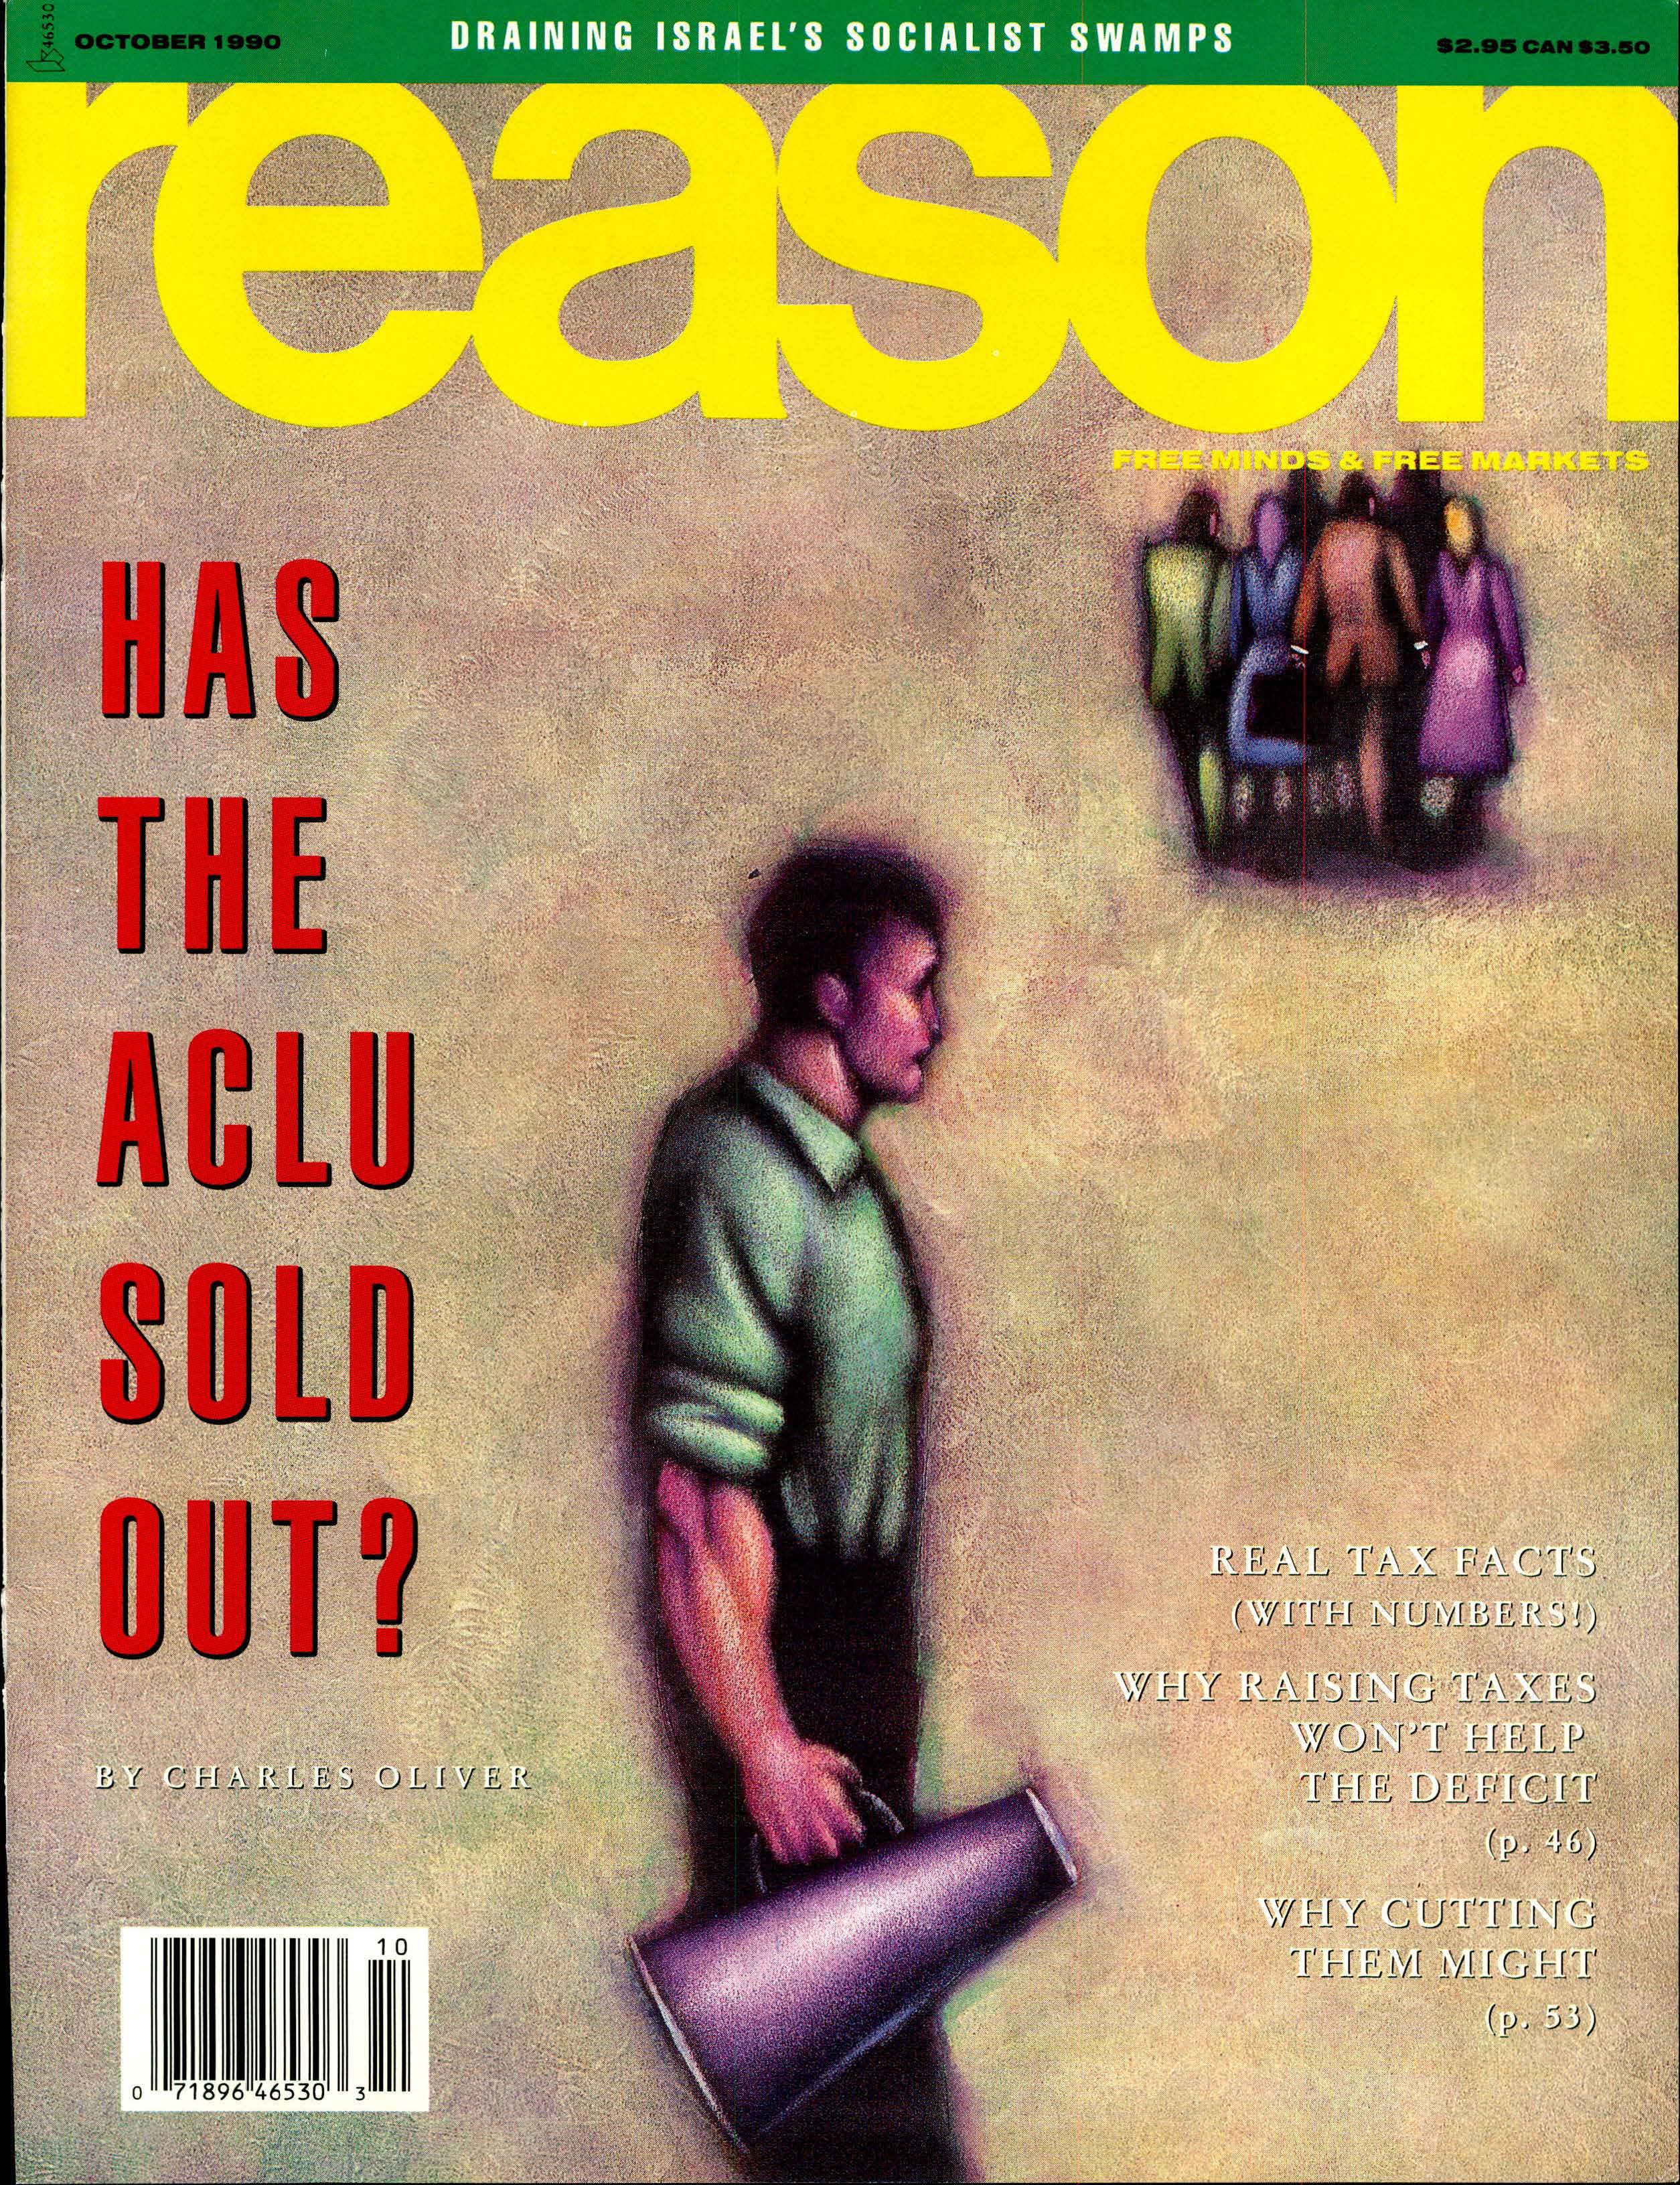 Reason Magazine, October 1990 cover image